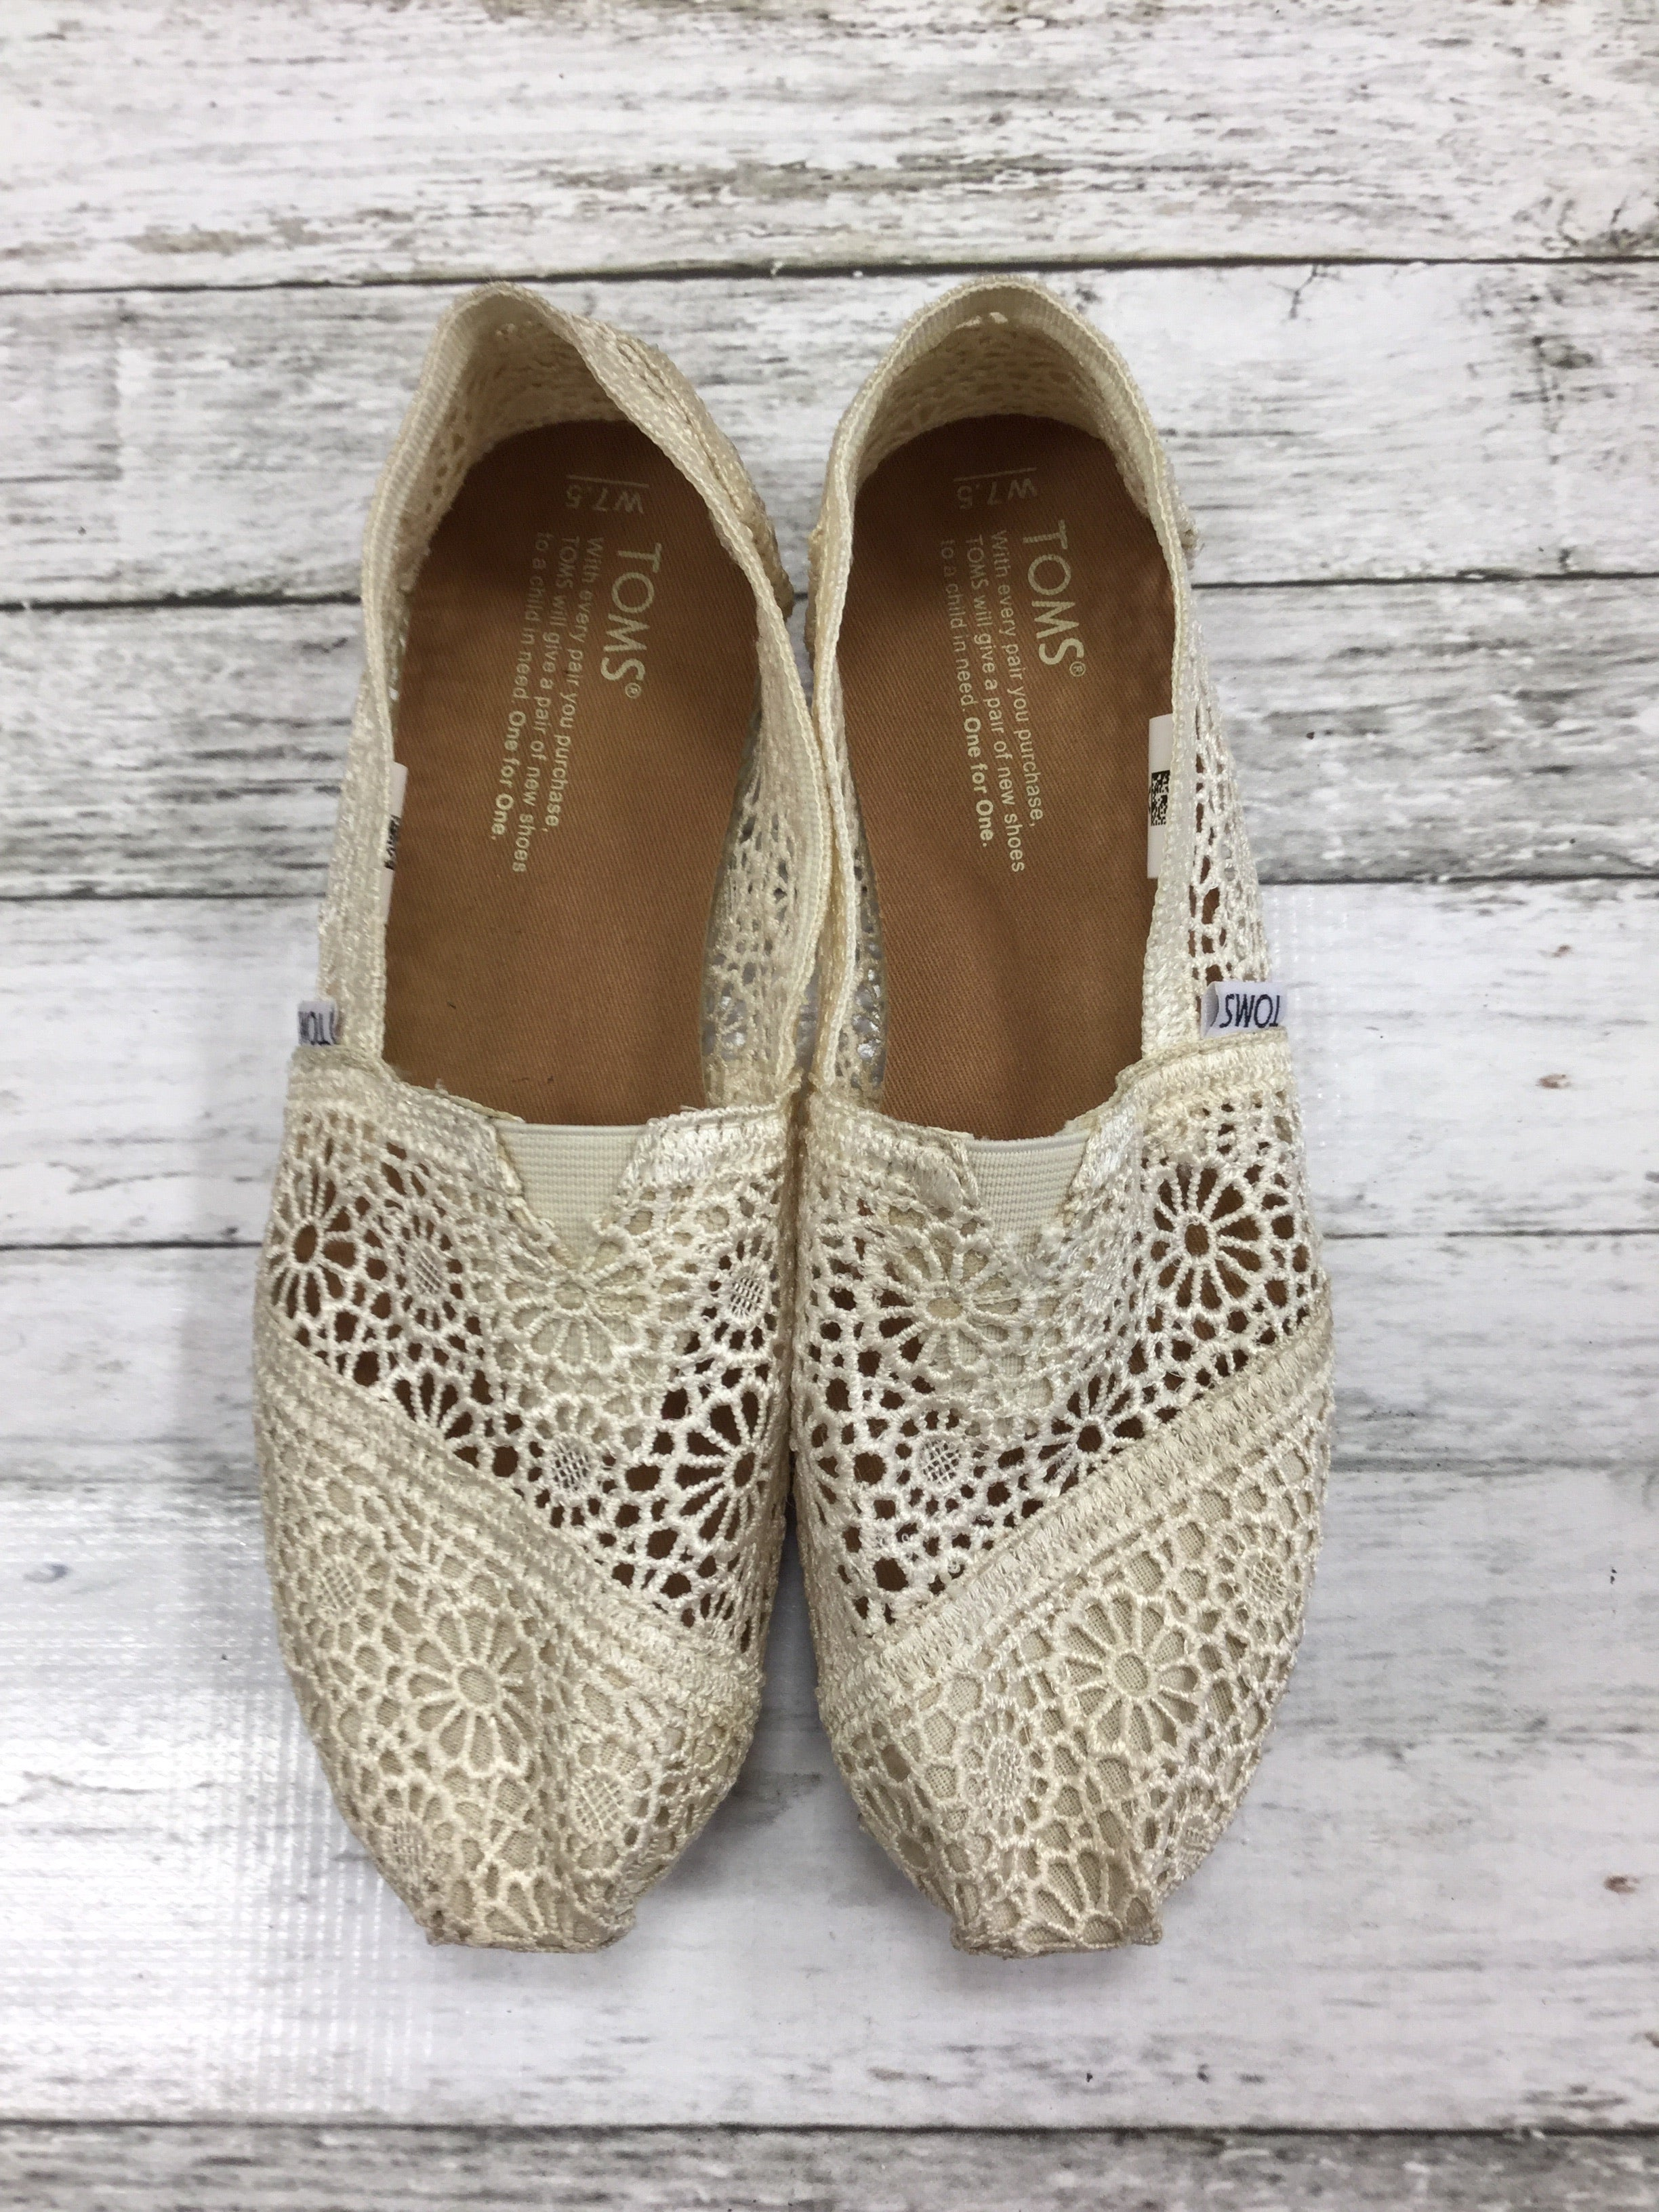 Primary Photo - BRAND: TOMS <BR>STYLE: SHOES FLATS <BR>COLOR: WHITE <BR>SIZE: 7.5 <BR>SKU: 127-4931-108